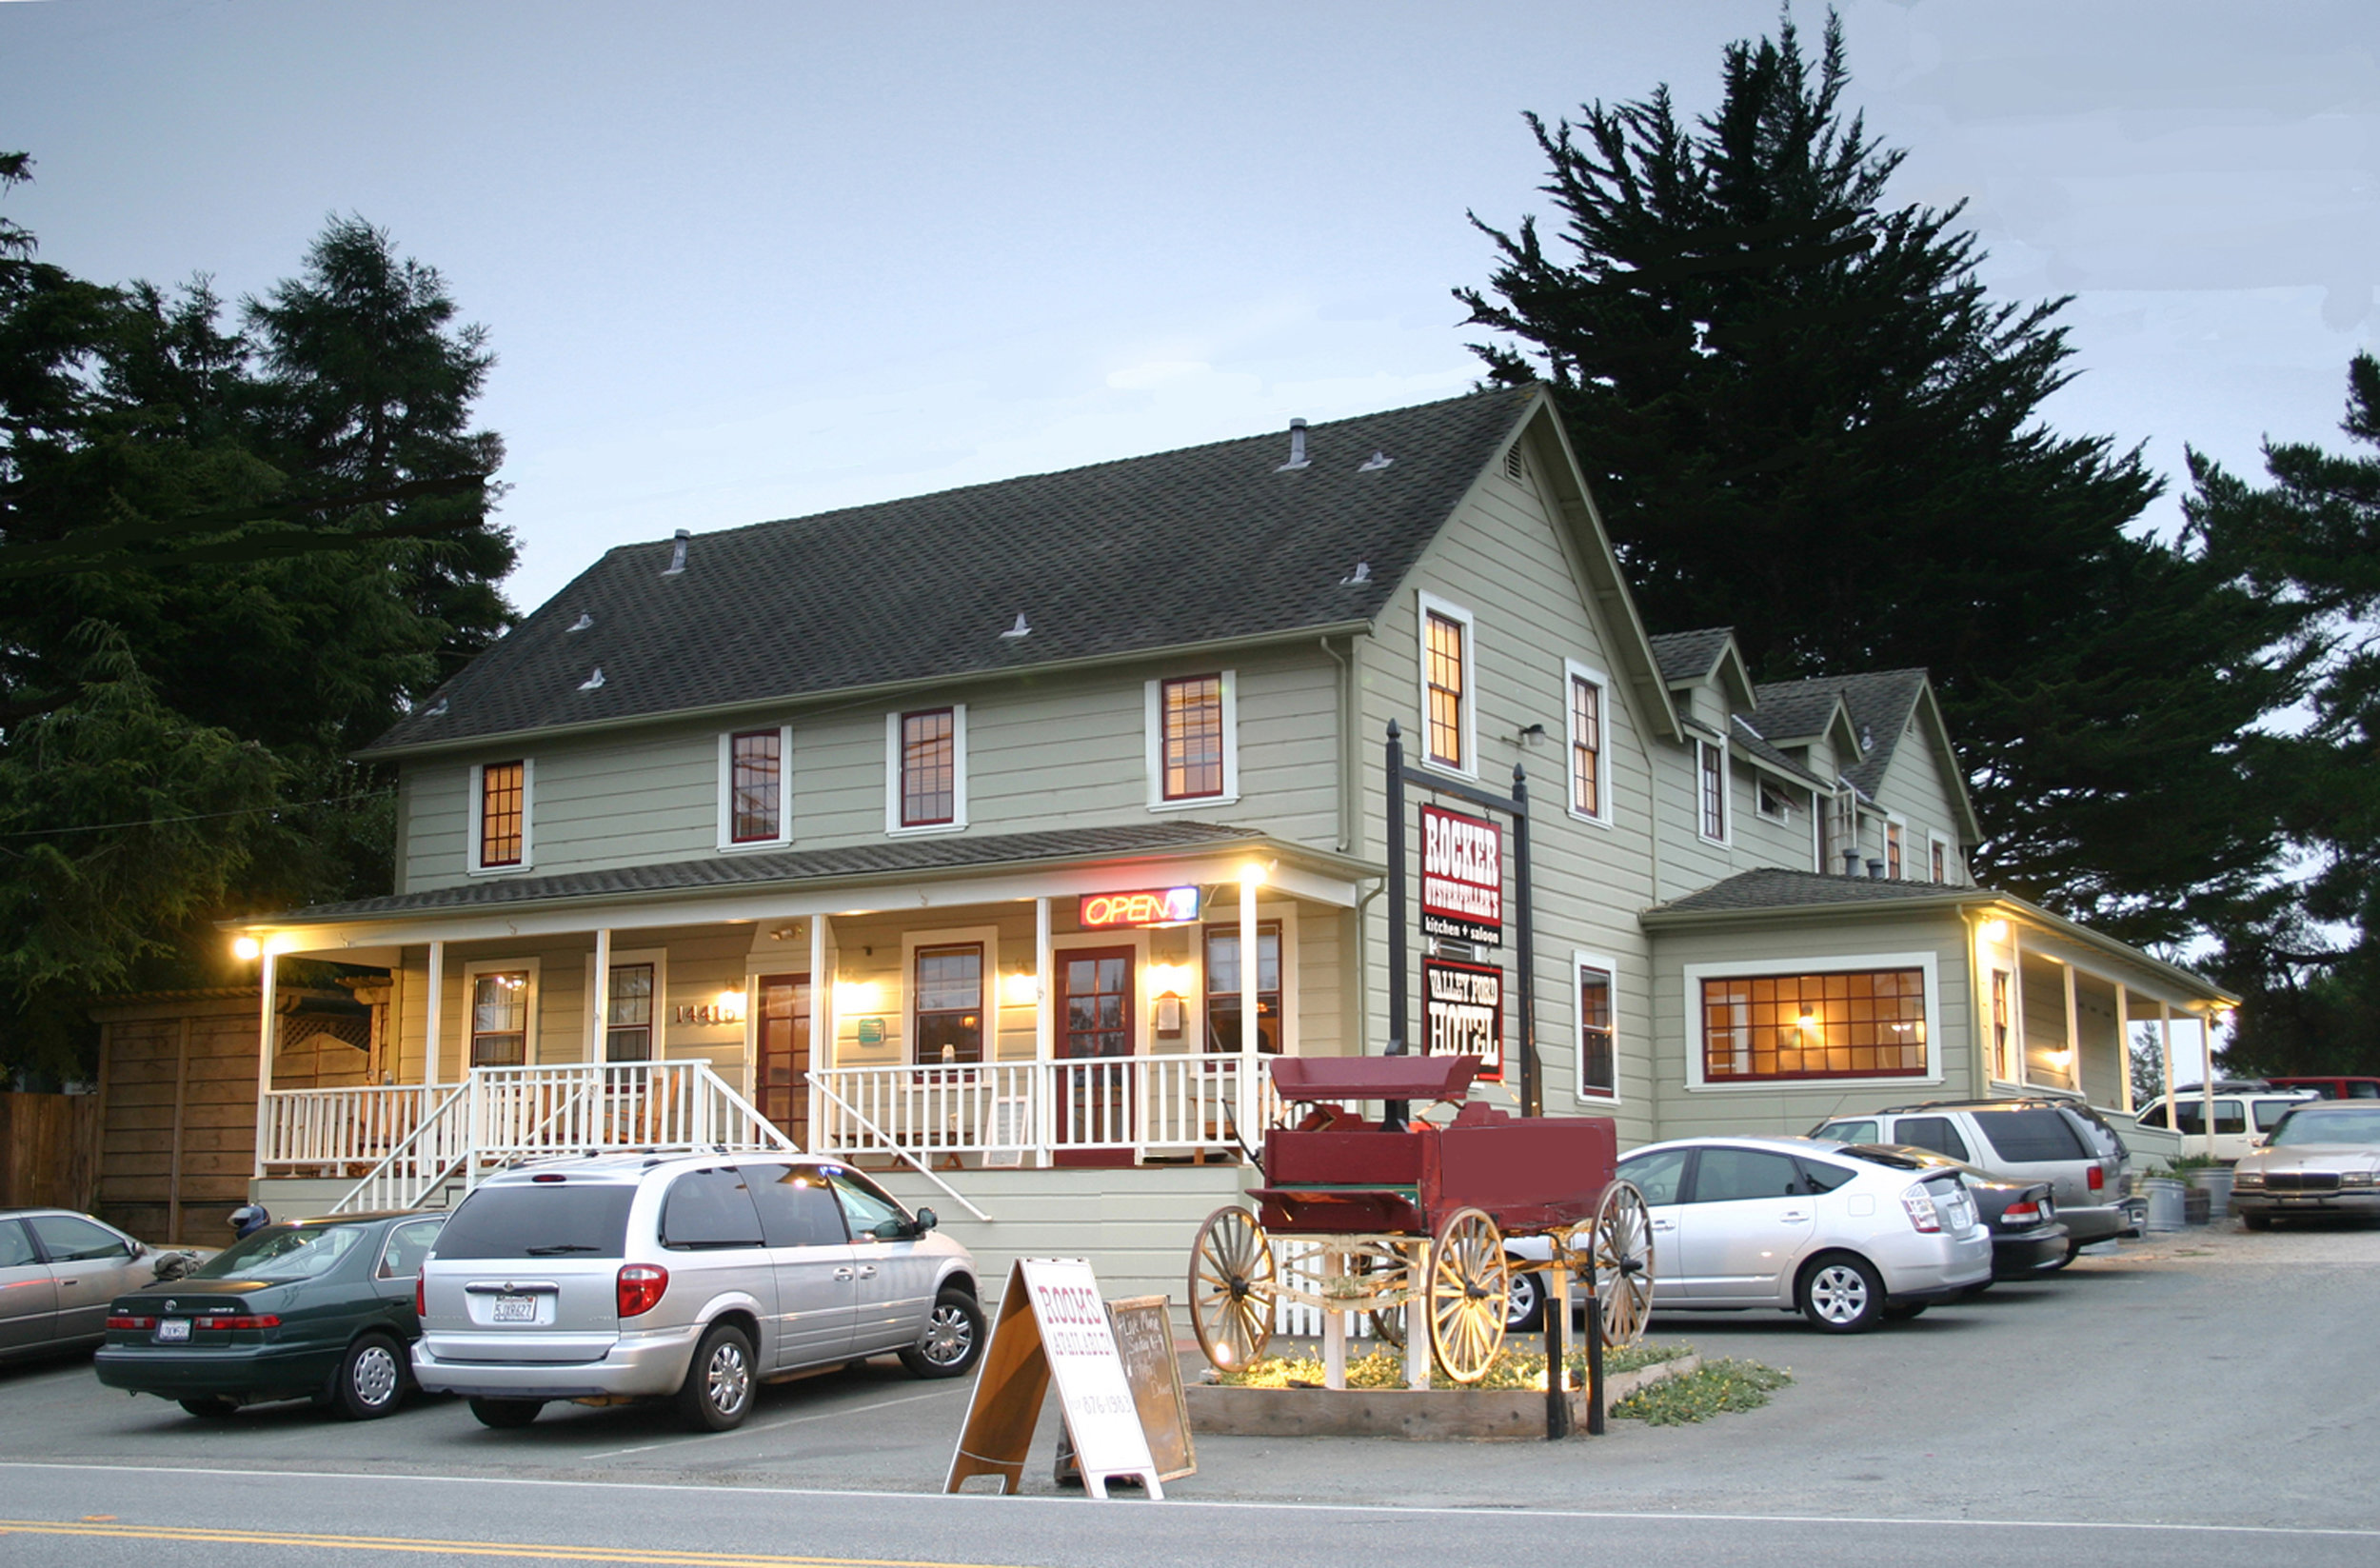 Valley Ford Hotel